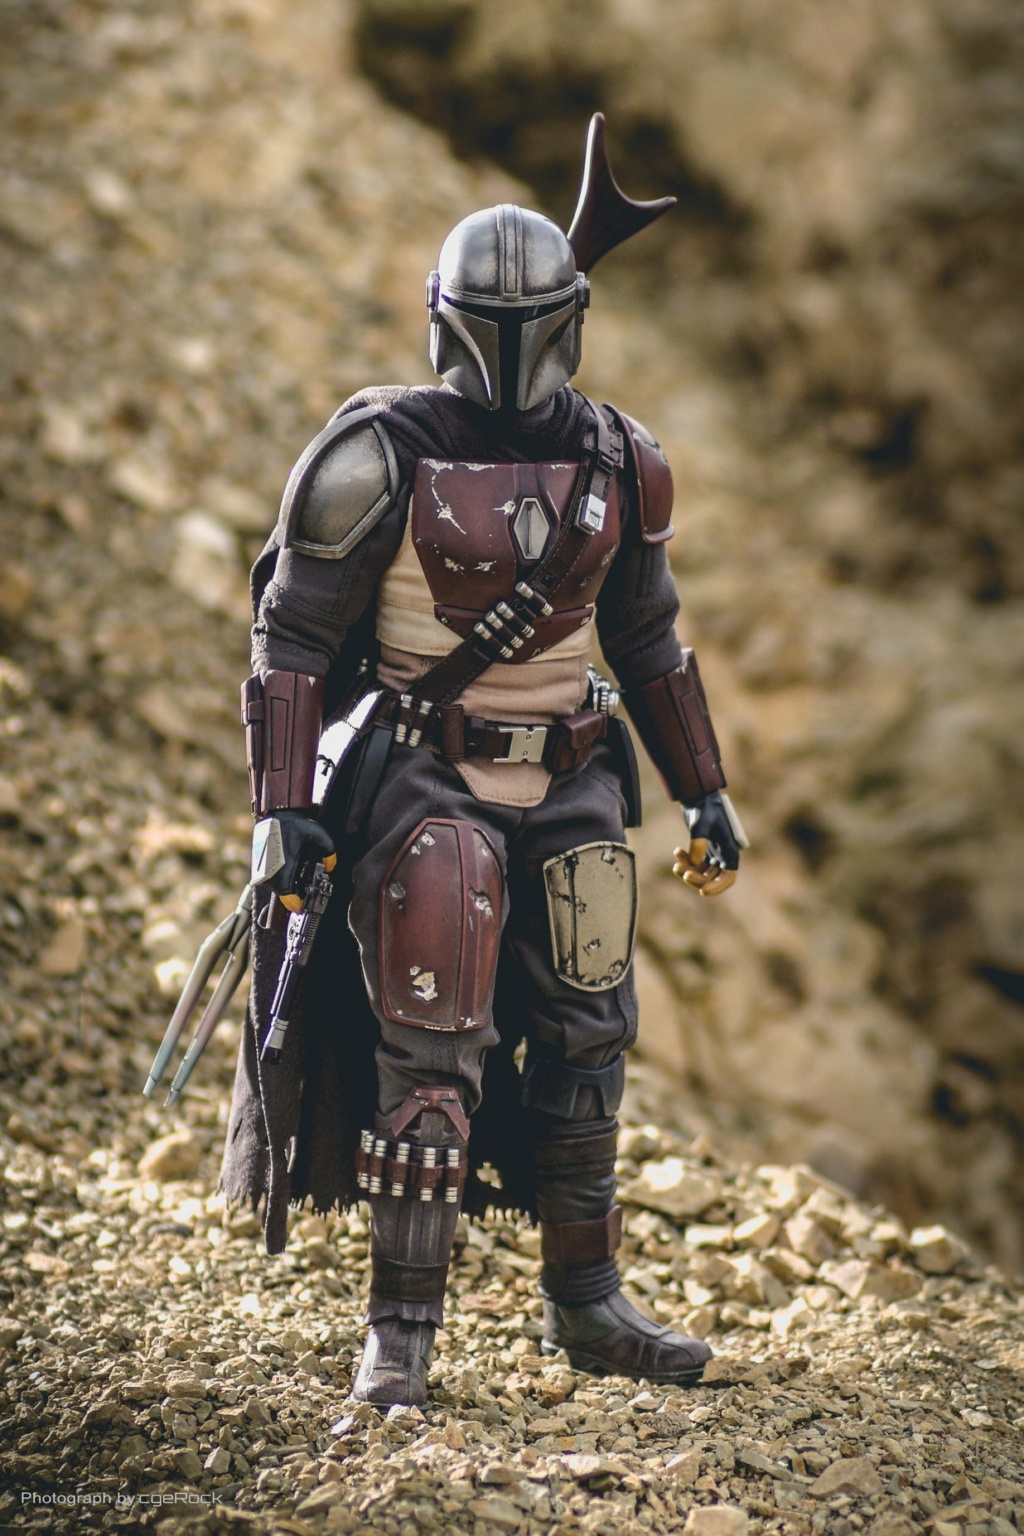 NEW PRODUCT: HOT TOYS: THE MANDALORIAN -- THE MANDALORIAN 1/6TH SCALE COLLECTIBLE FIGURE 20126